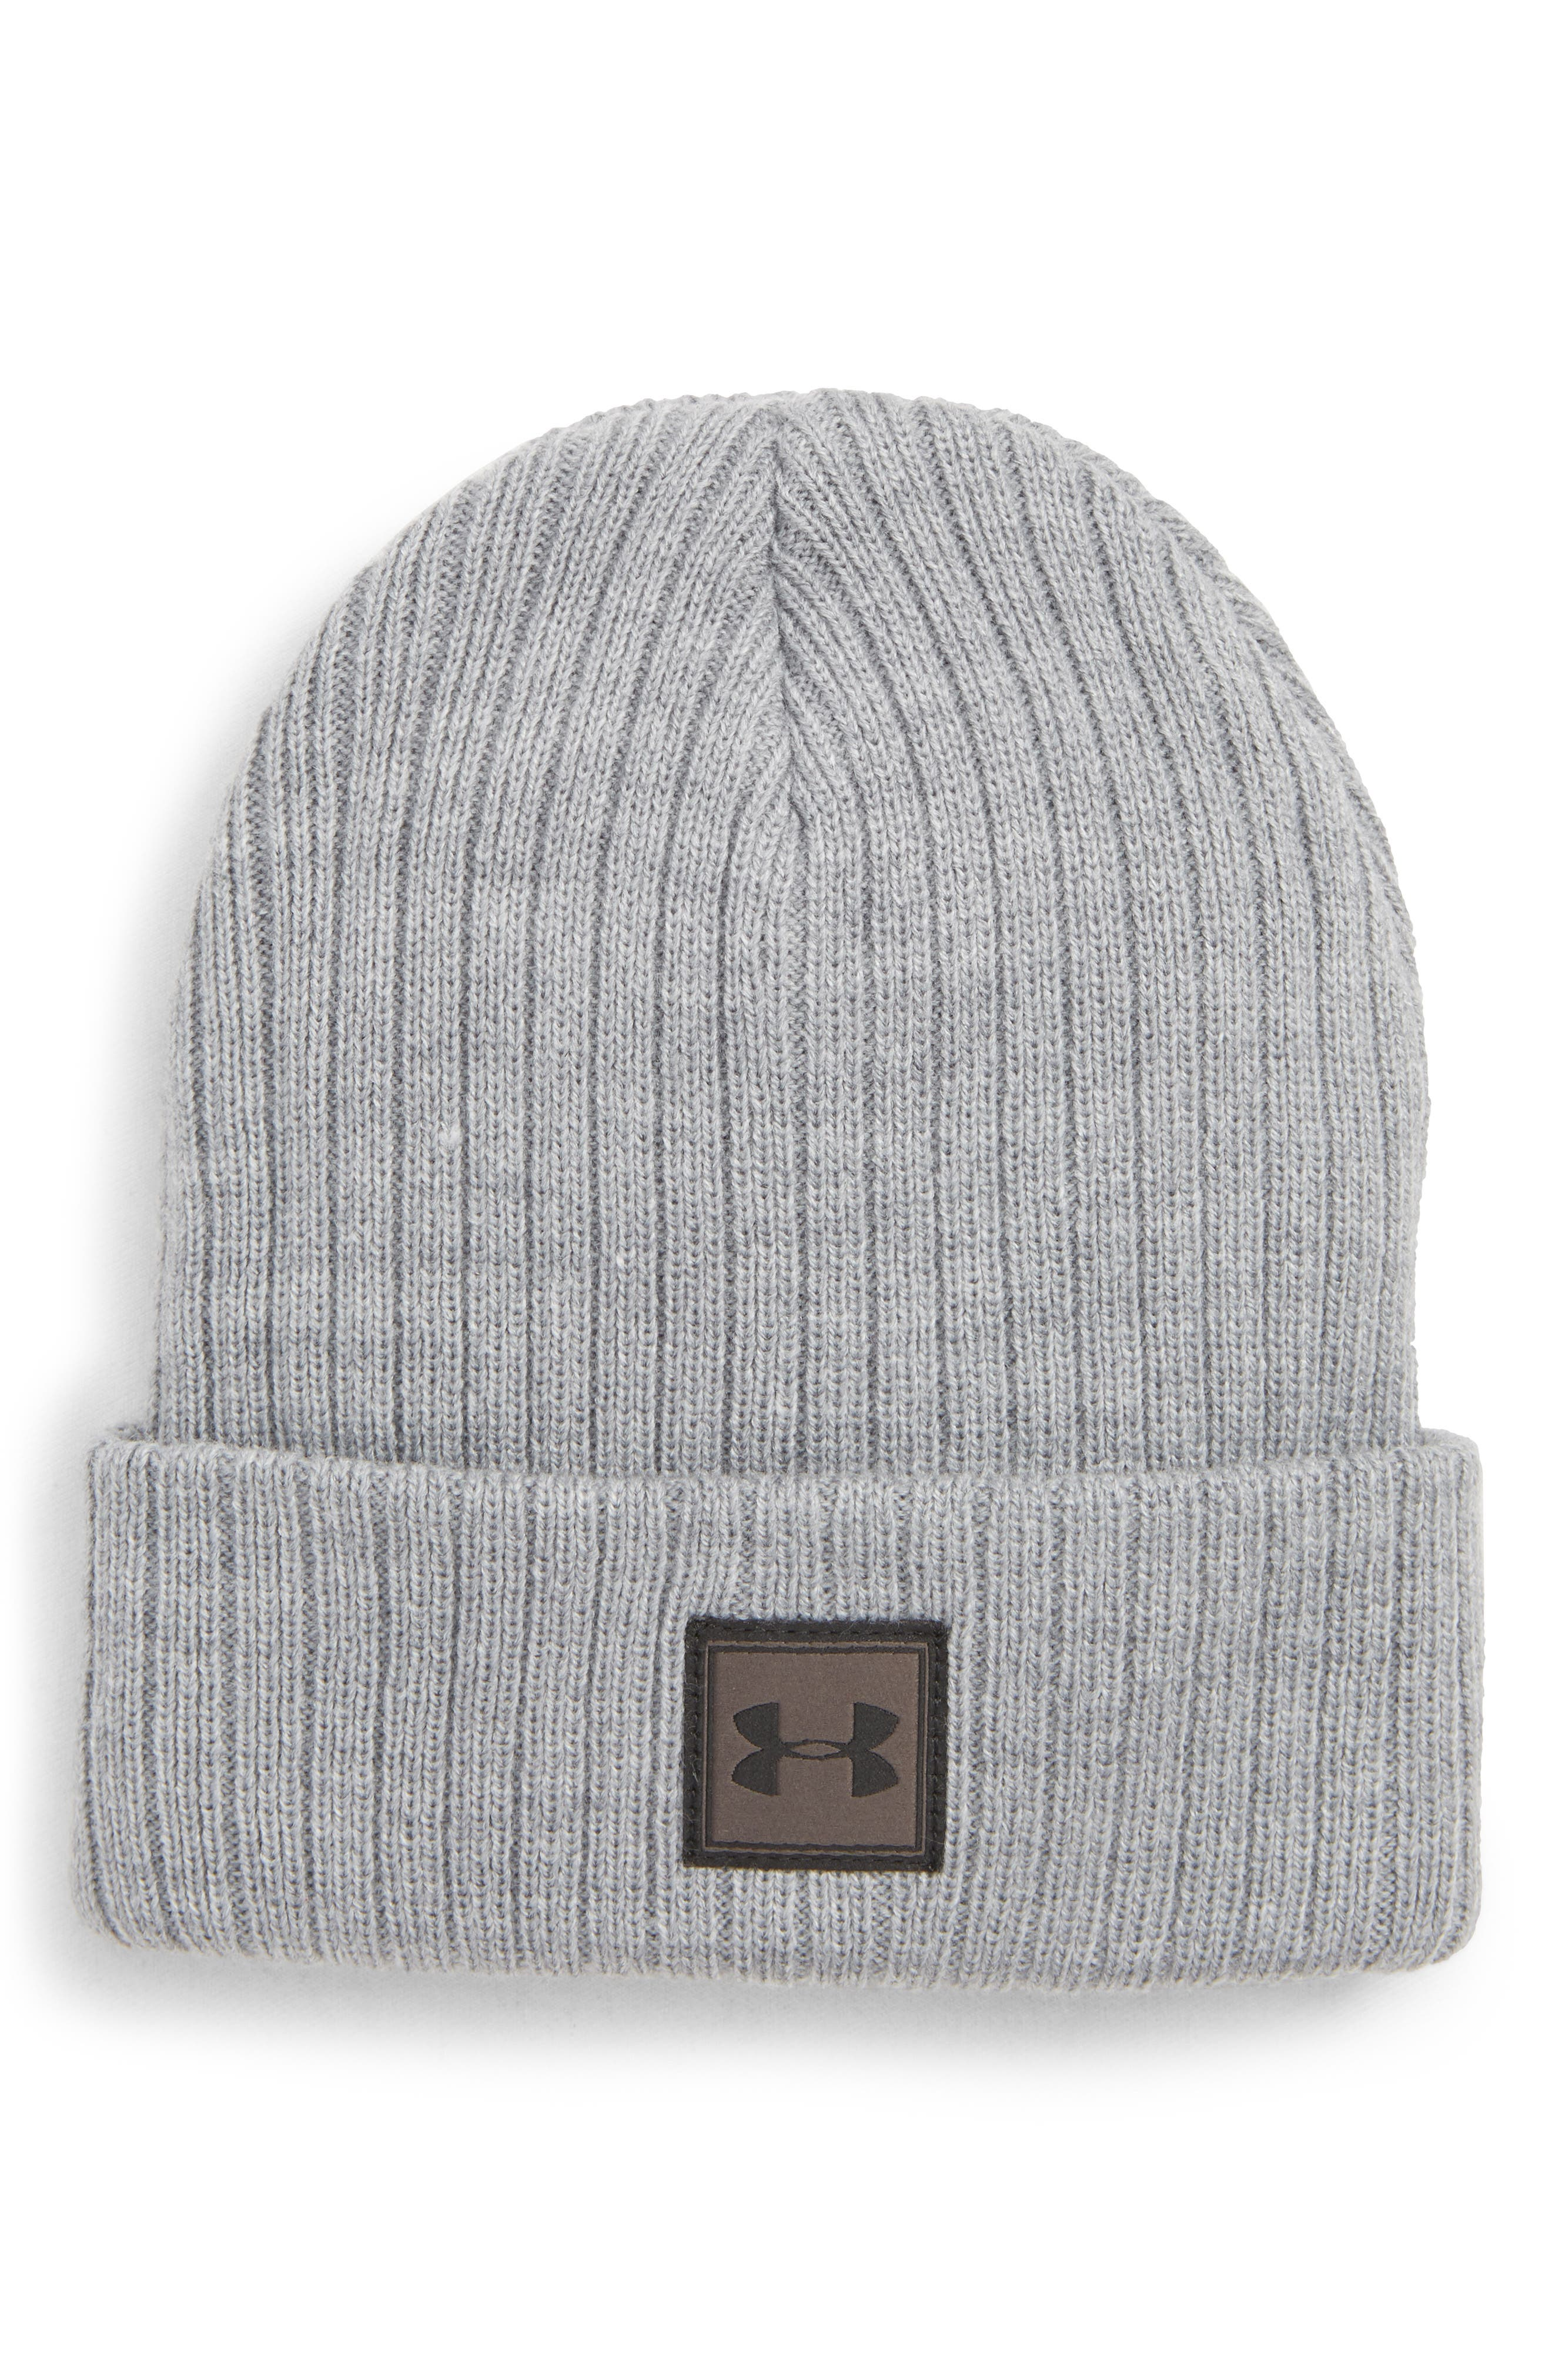 Boys Under Armour Coldgear Truckstop 20 Beanie